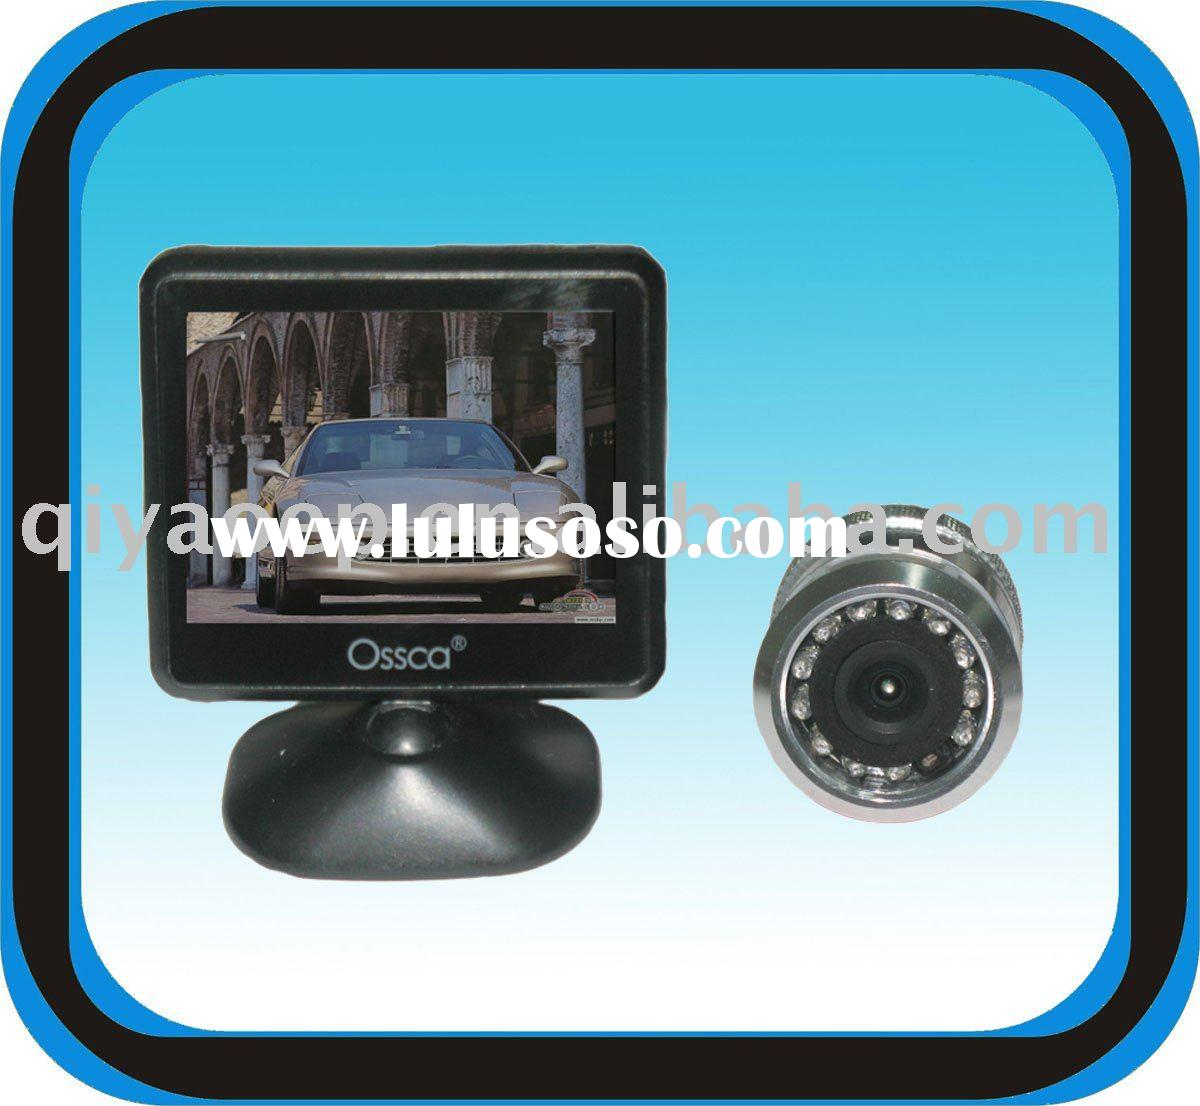 Car Back Up Viewer System with CMOS Waterproof Monitor Automatica Output of Image